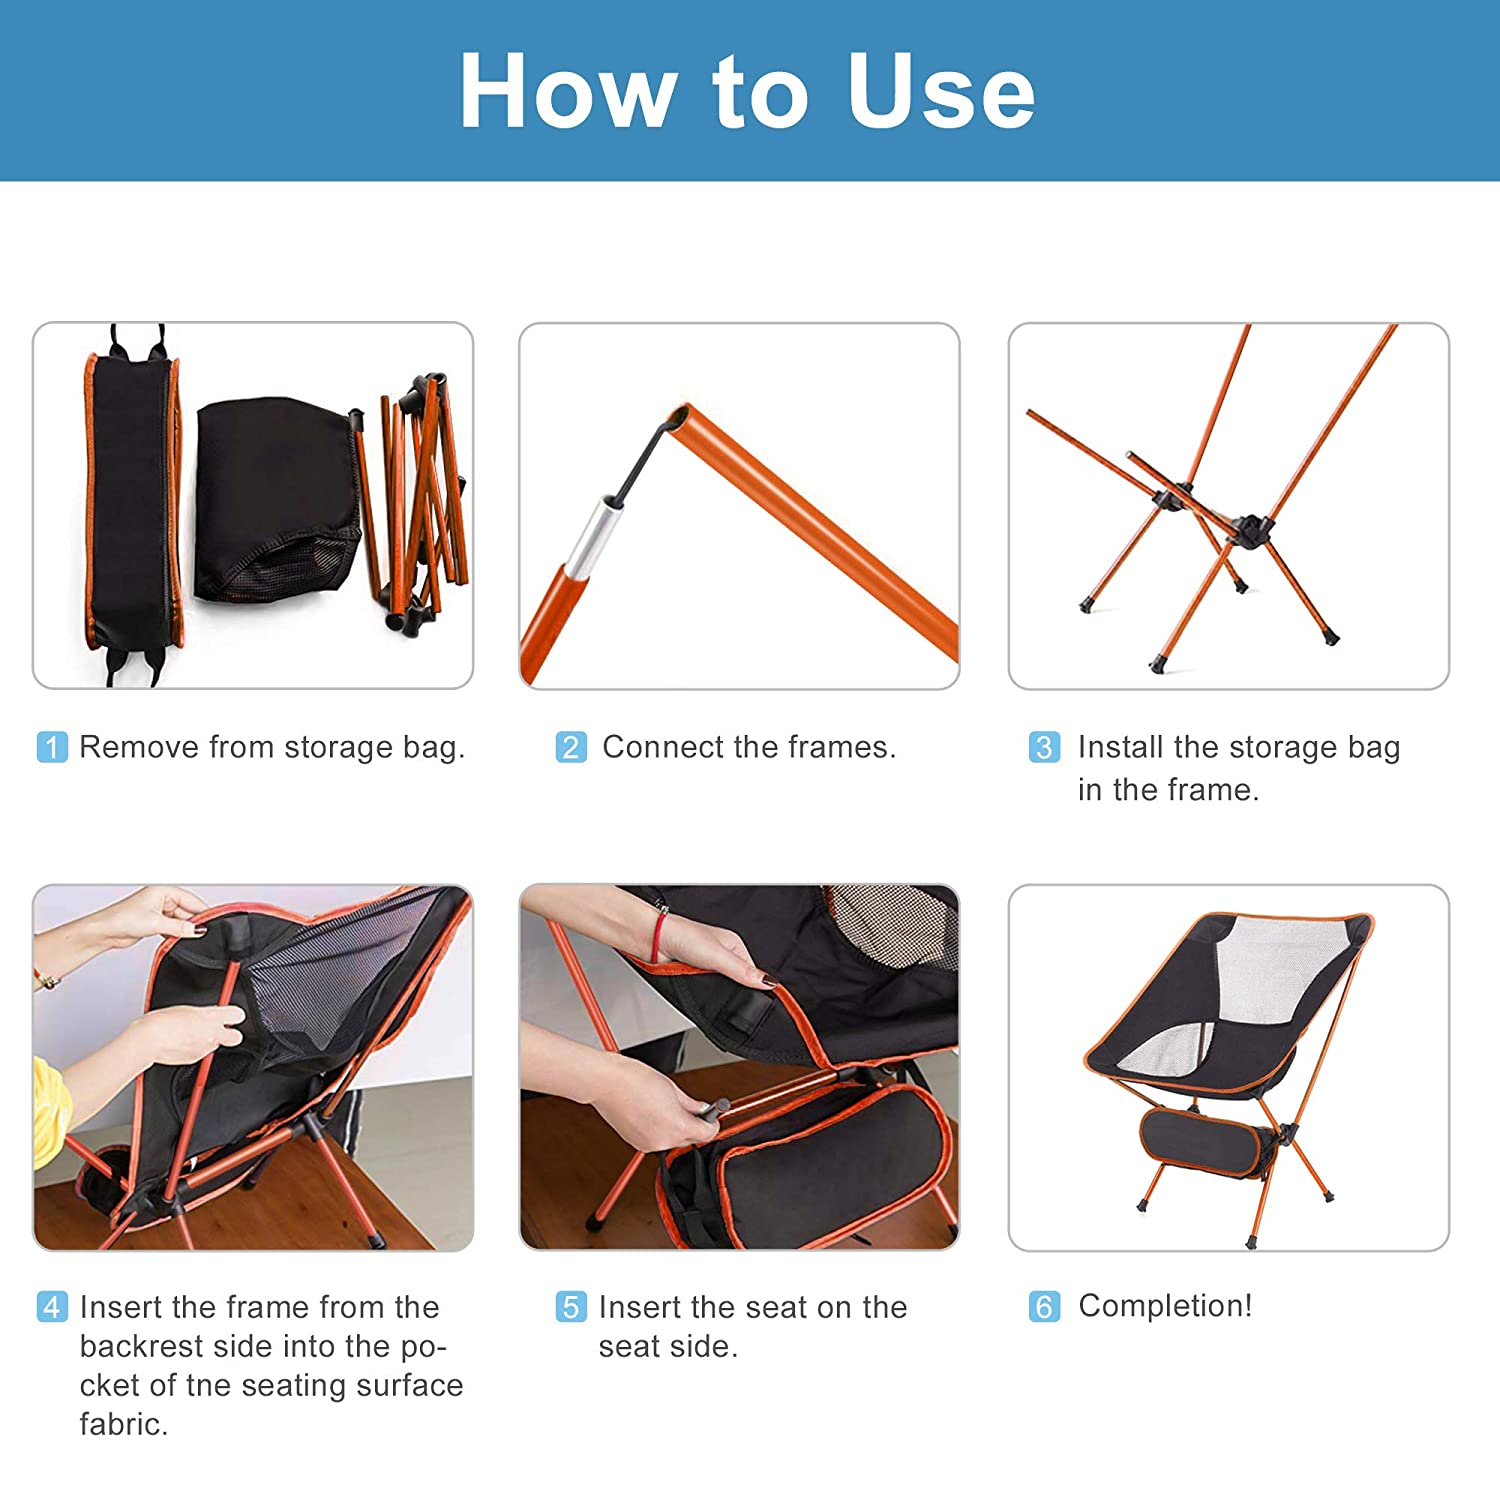 Park ARTEESOL Camping Chair Camping BBQ Portable Compact Lightweight Folding Chair with Carry Bag 150kg Capacity for Outdoor Activities Beach.